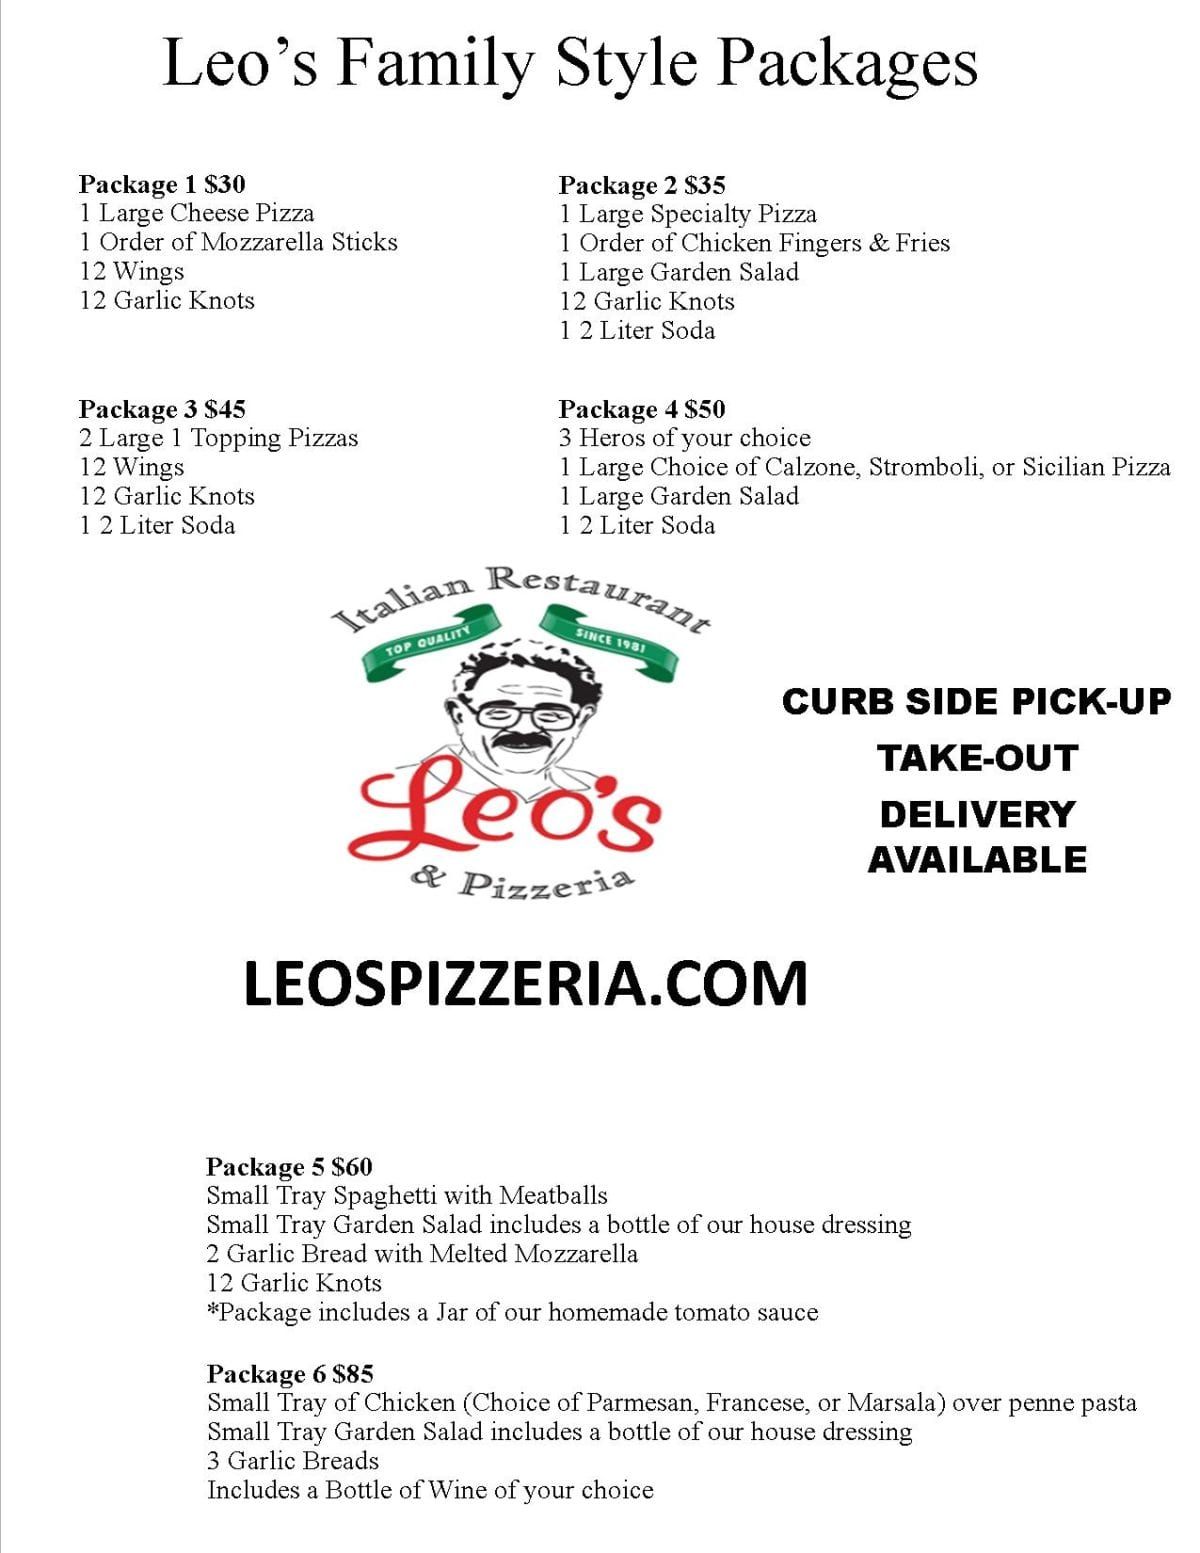 Leo's Family Packages!